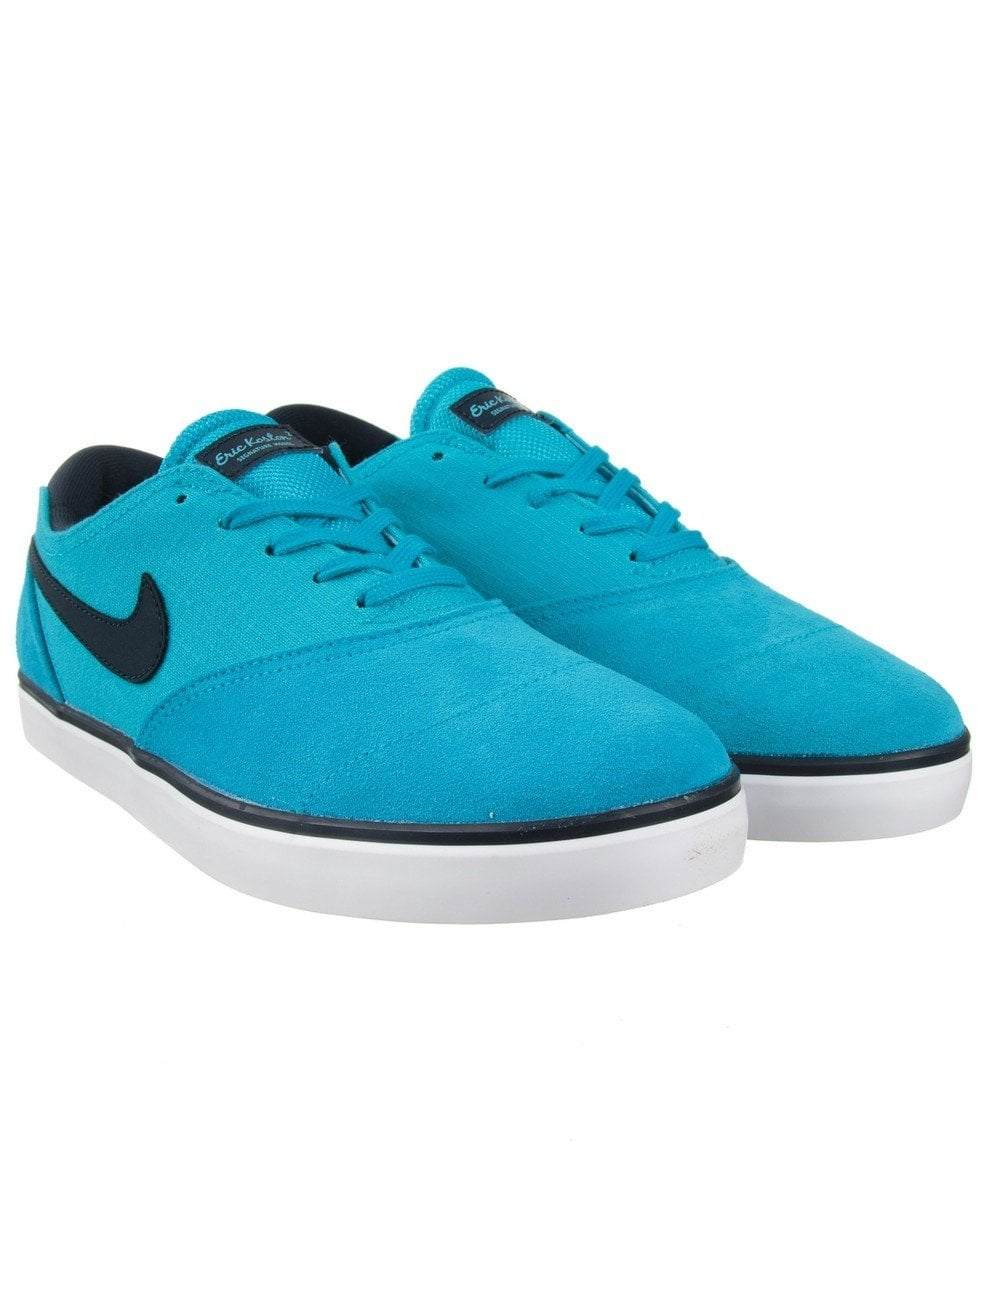 colchón Gallo esqueleto  Nike SB Eric Koston 2 Shoes - Blue Lagoon - Footwear from Fat Buddha Store  UK